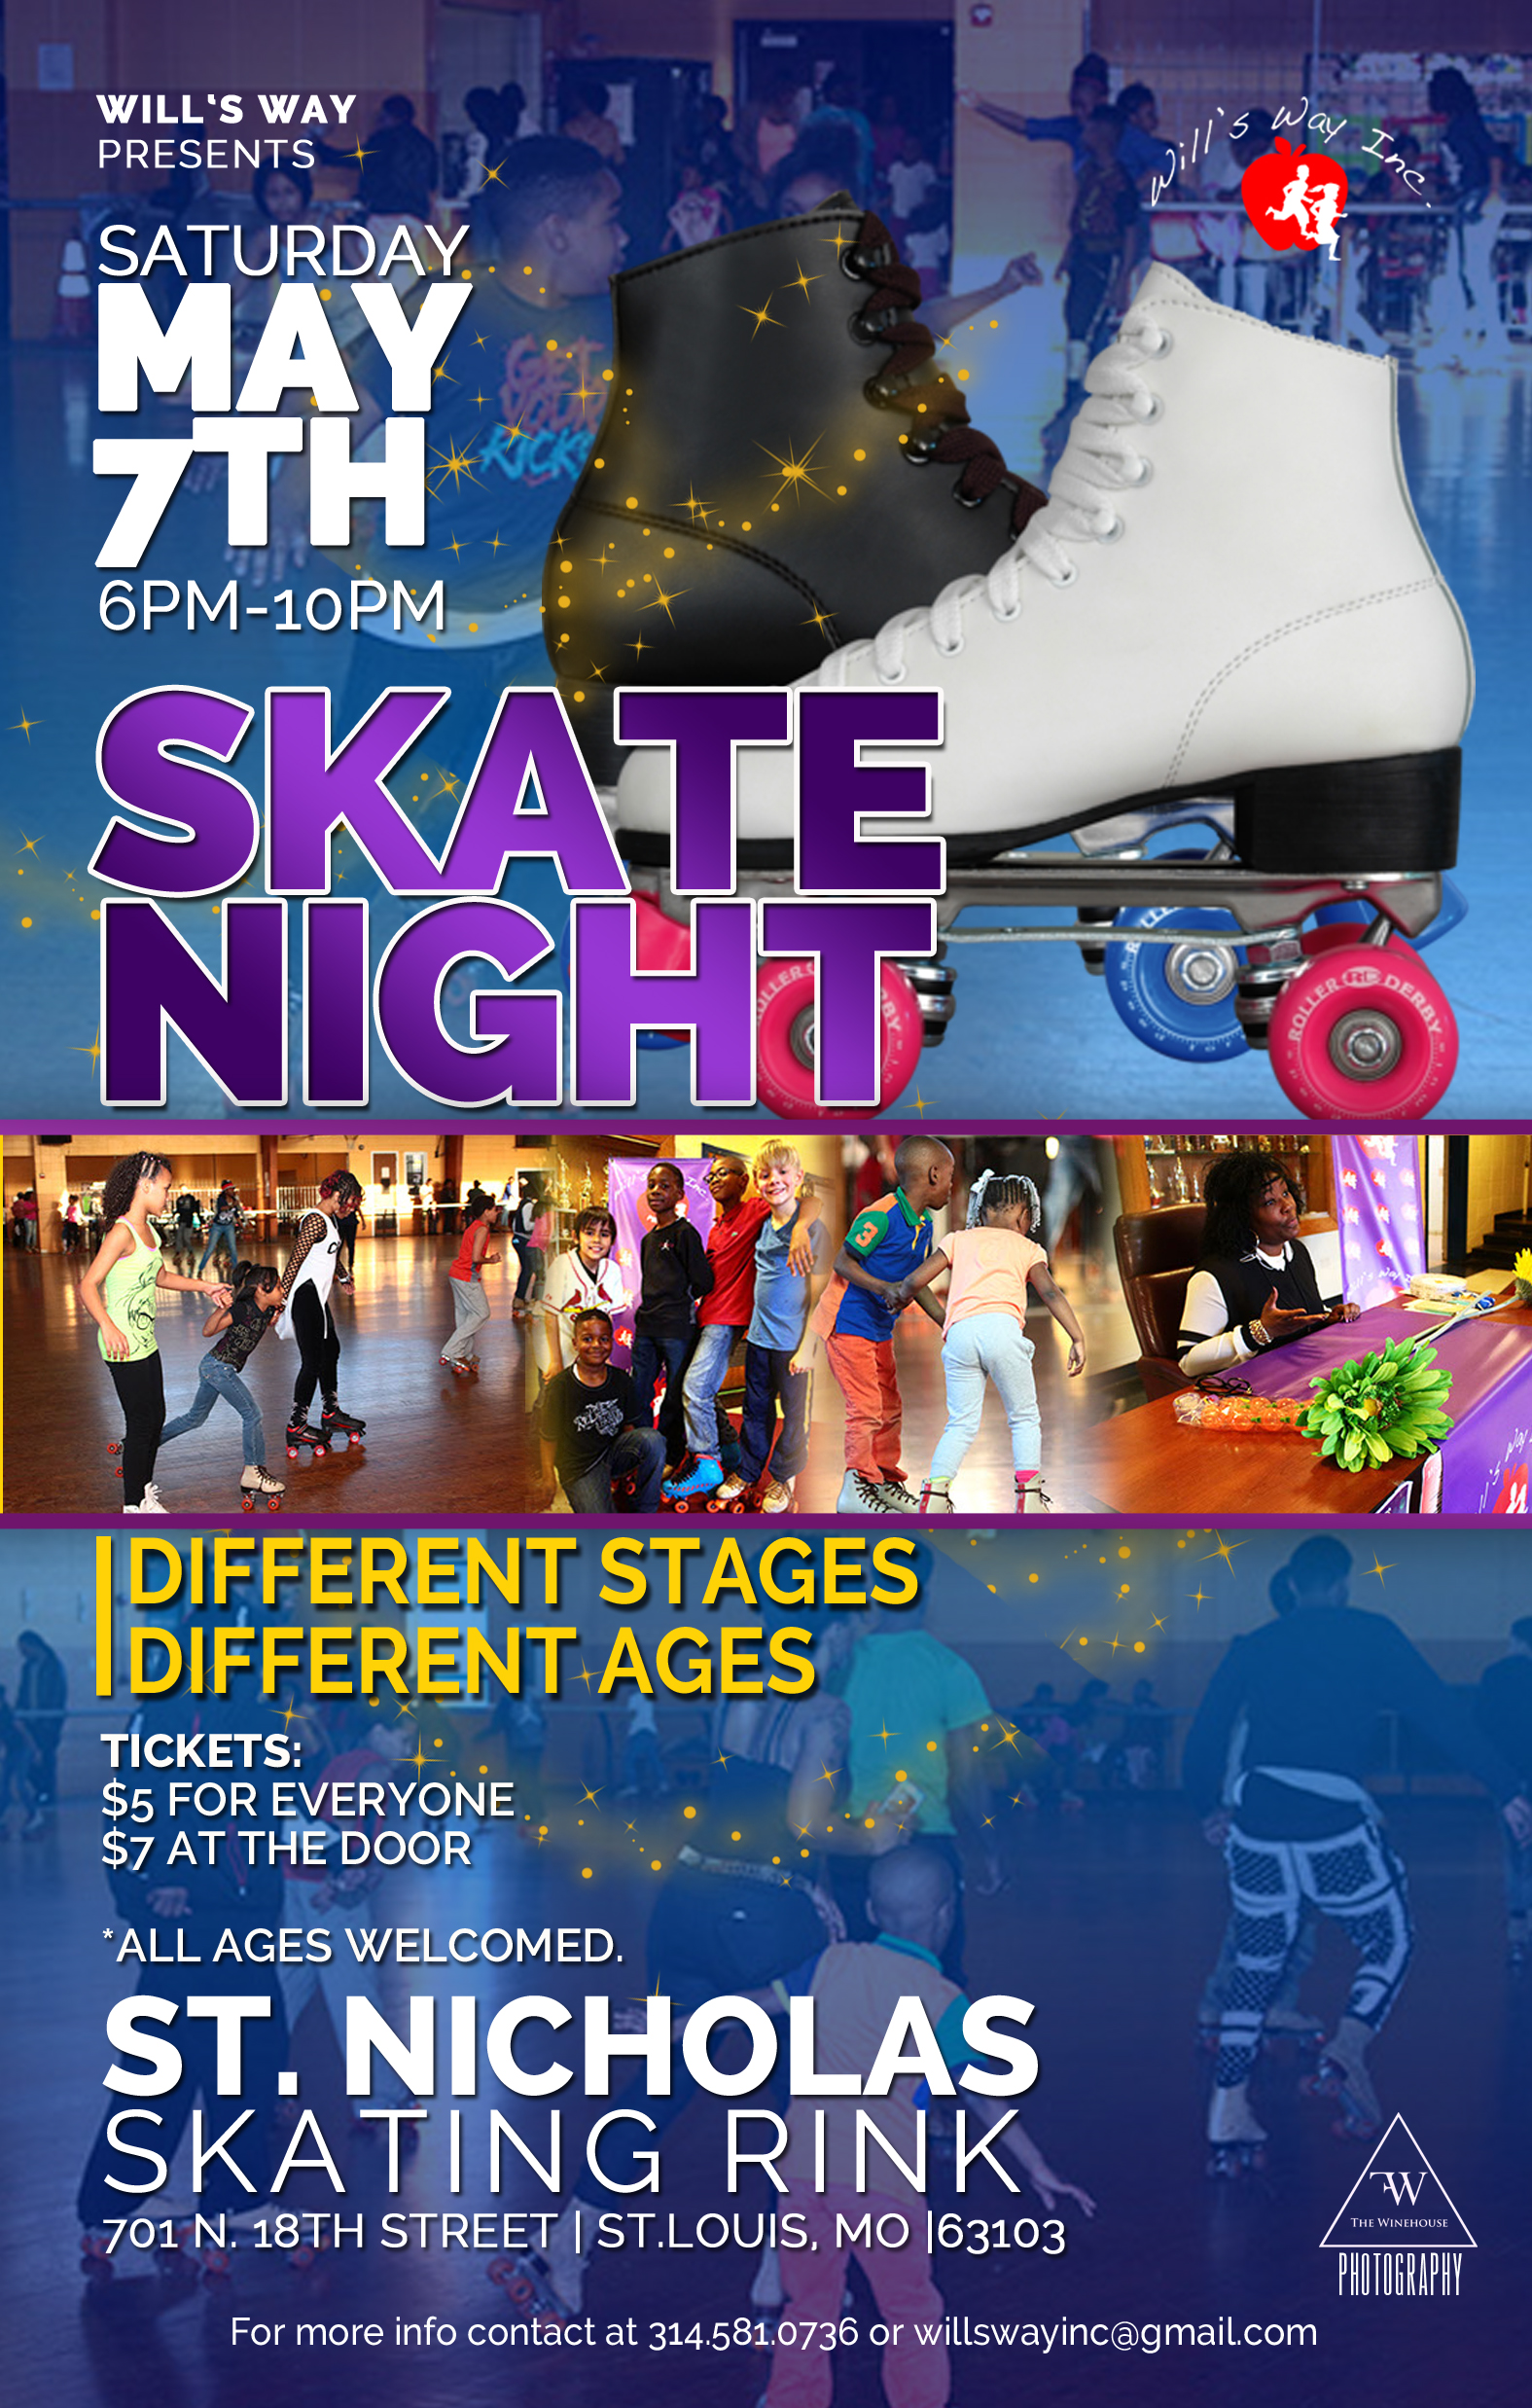 Will's Way Skate Night 2016